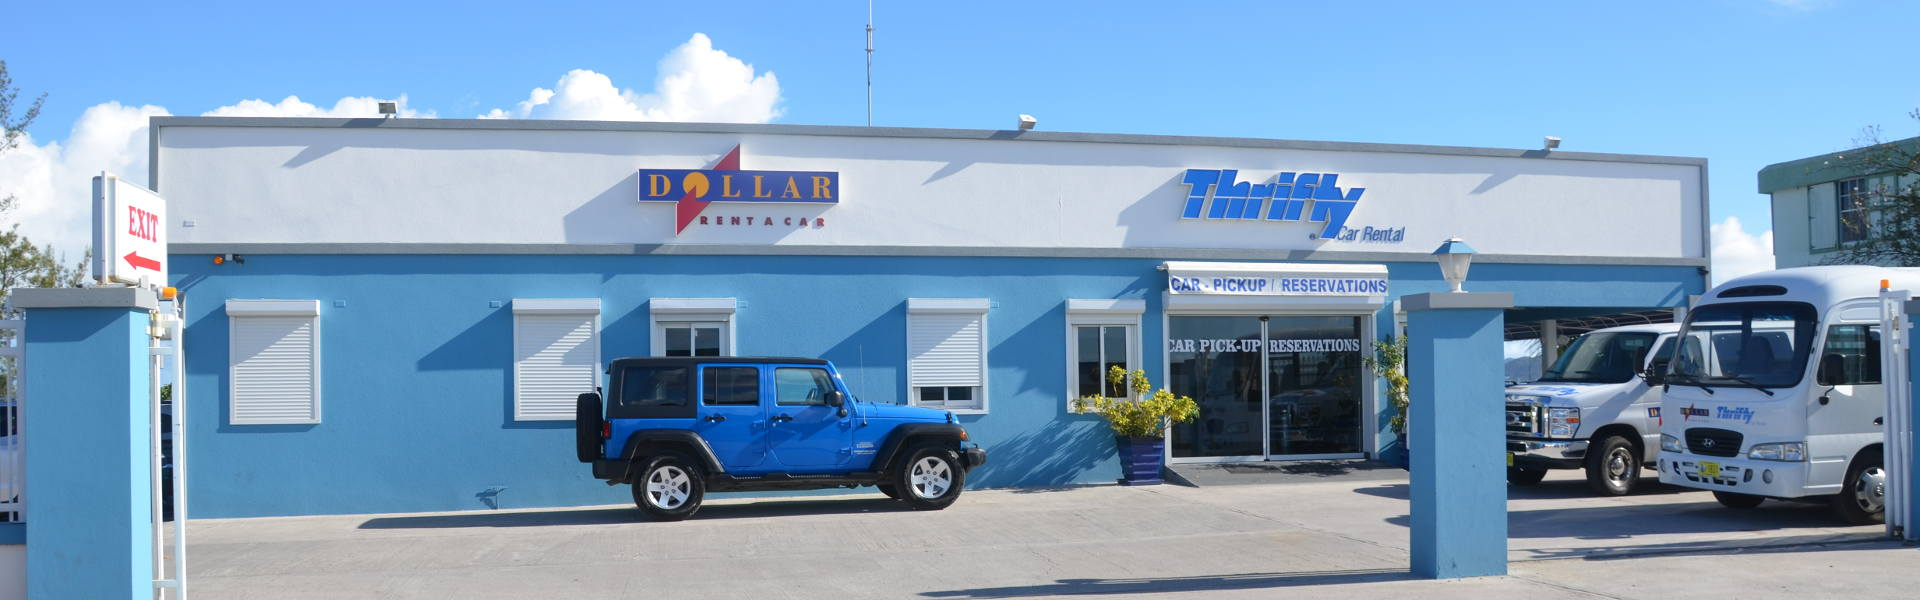 Dollar/Thrifty Car Rental in St. Maarten has always been true to the company's motto to provide great cars at the best rates. But during the past years, Dollar/Thrifty SXM has expanded its ambitions and became a leader of the island's competitive car rental industry.